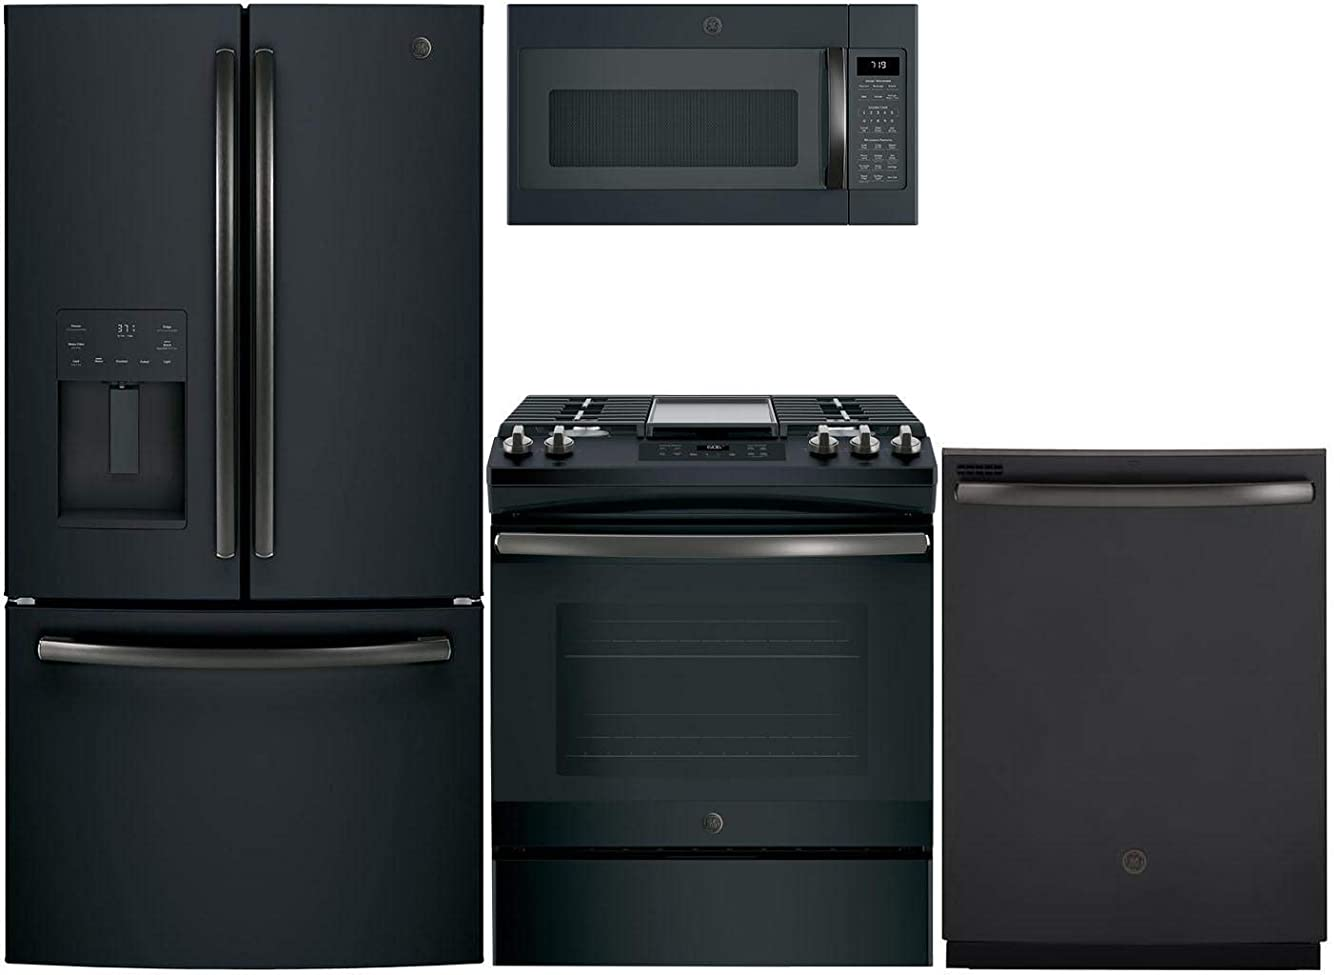 GE 4 Piece Kitchen Appliance Package with GFE26JEMDS 36